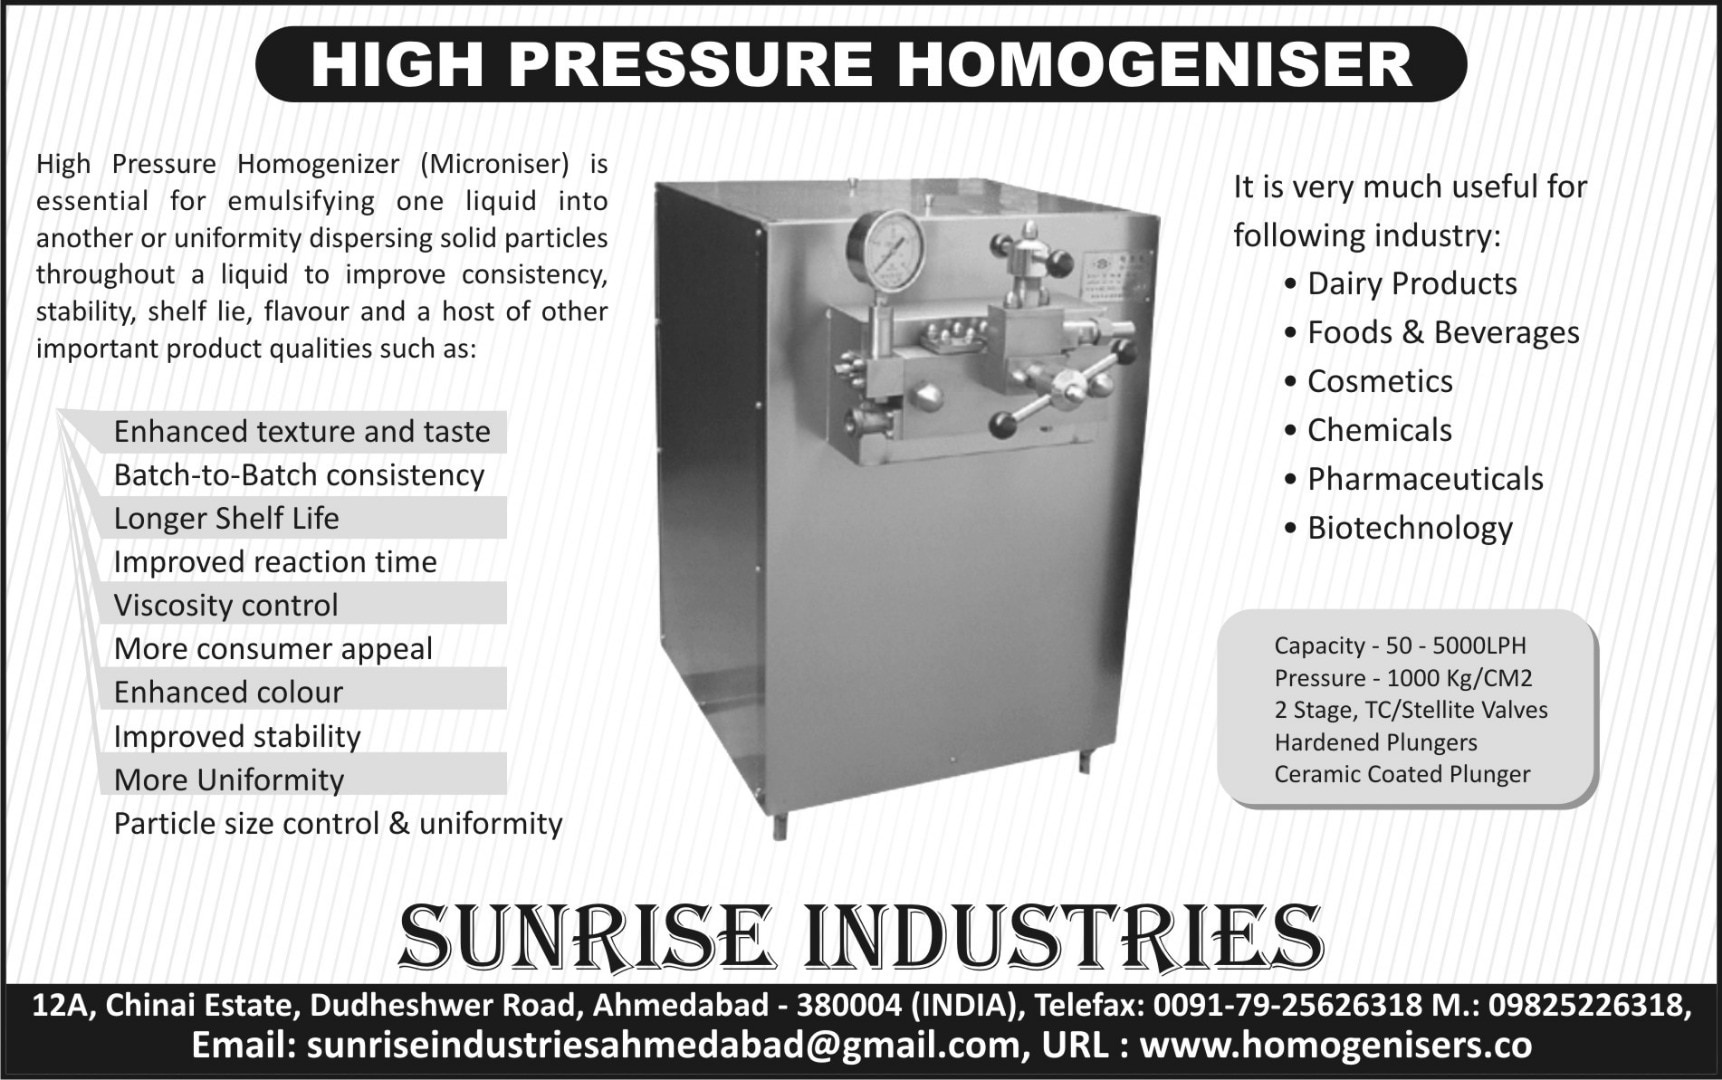 MFG, HOMOGENIZER & TEXTILE INSTRUMENTS